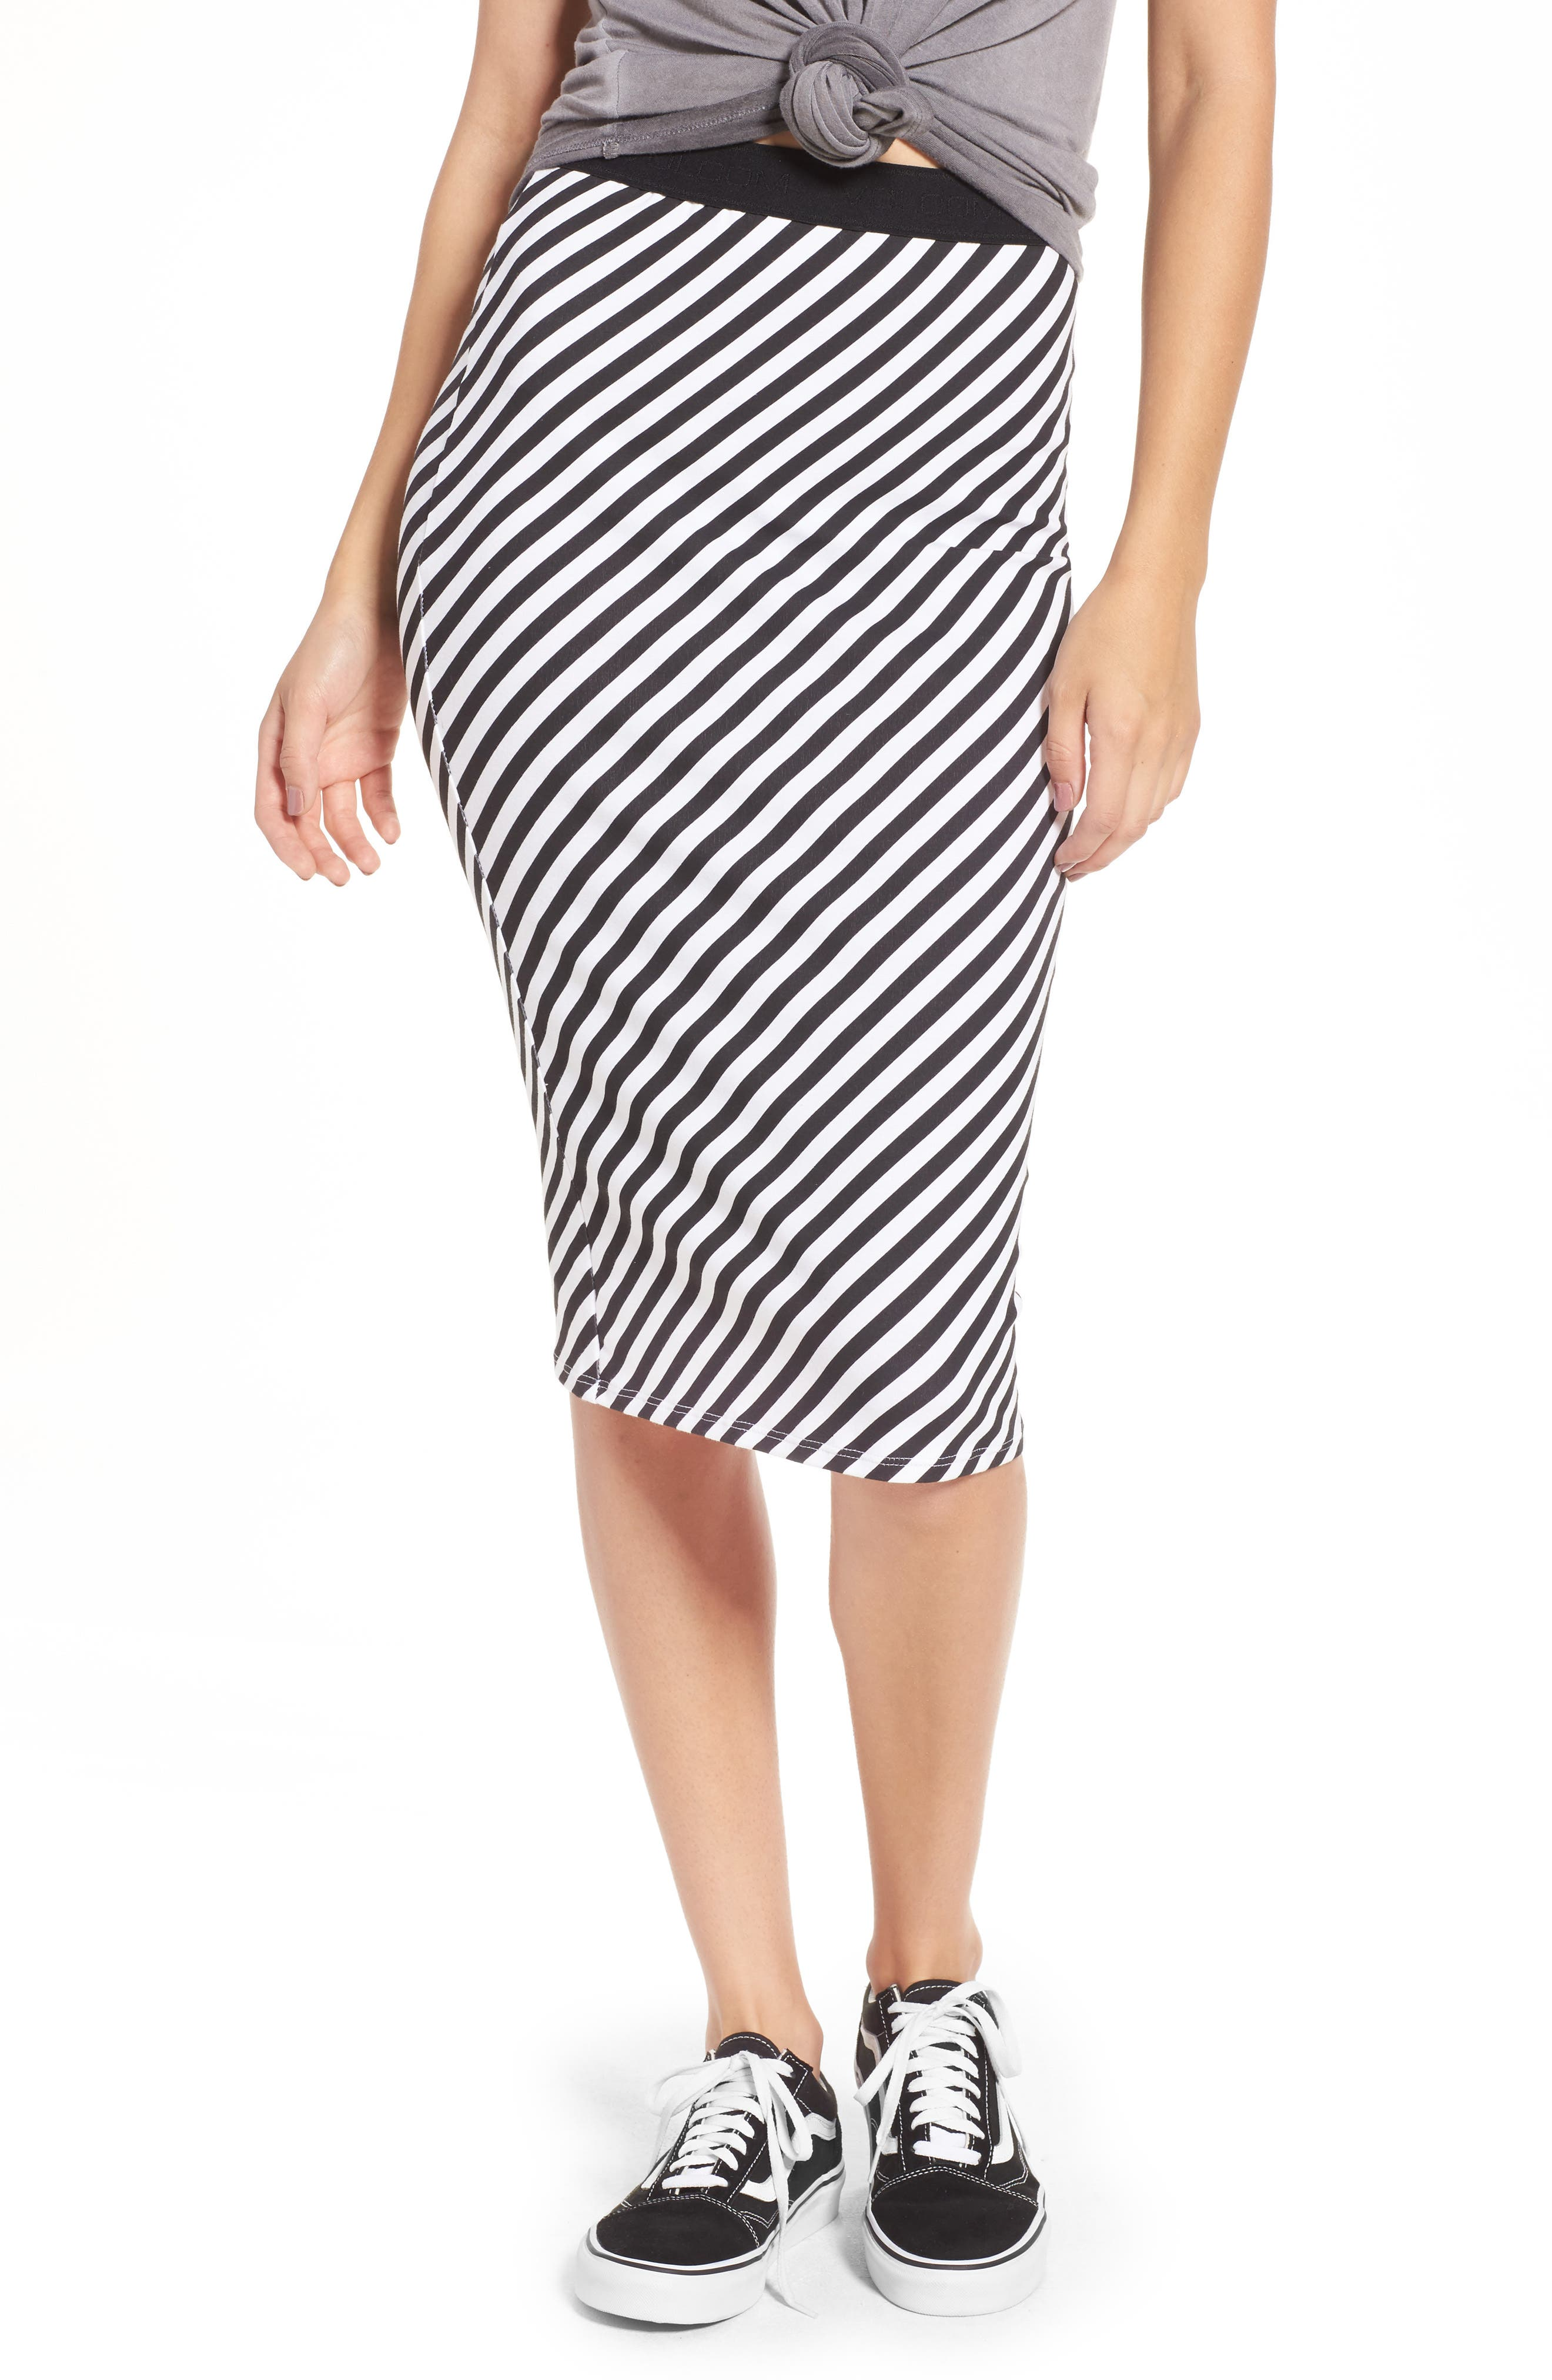 Futures Past Stripe Skirt,                         Main,                         color, 001